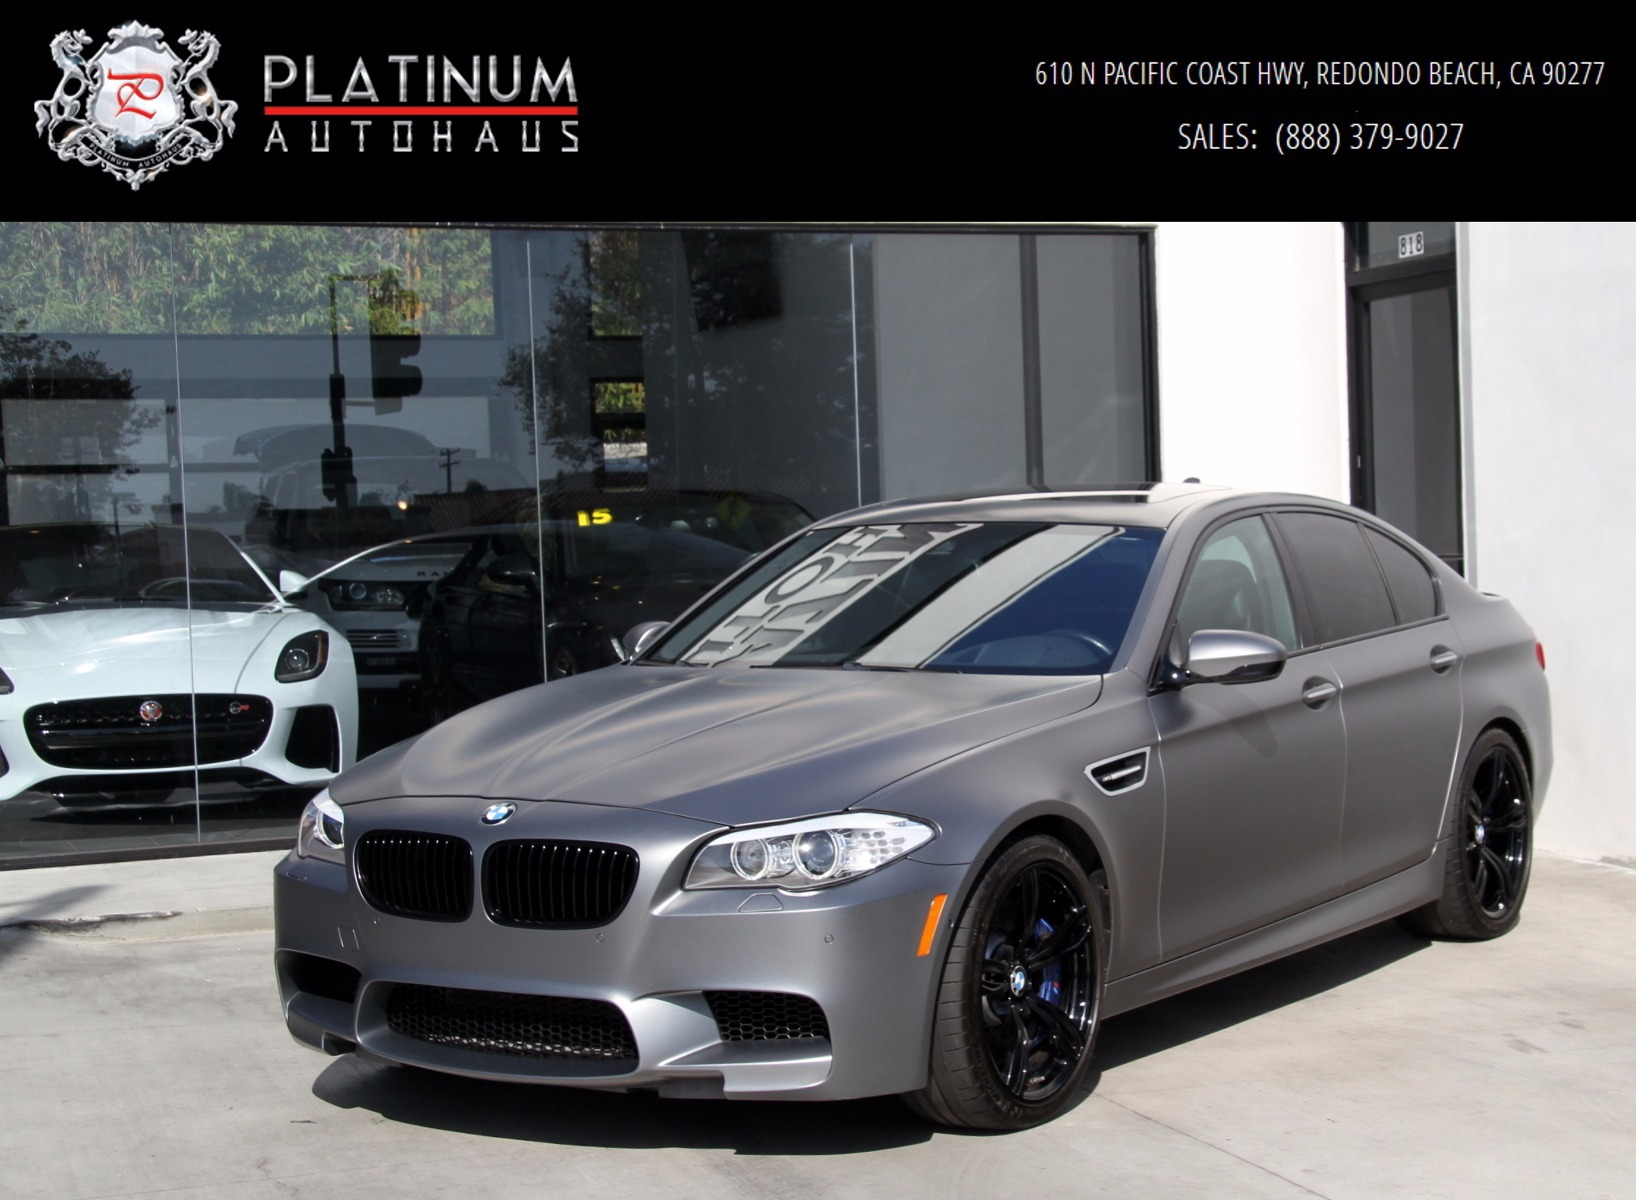 2013 Bmw M5 For Sale >> 2013 Bmw M5 Matte Paint Stock 6008 For Sale Near Redondo